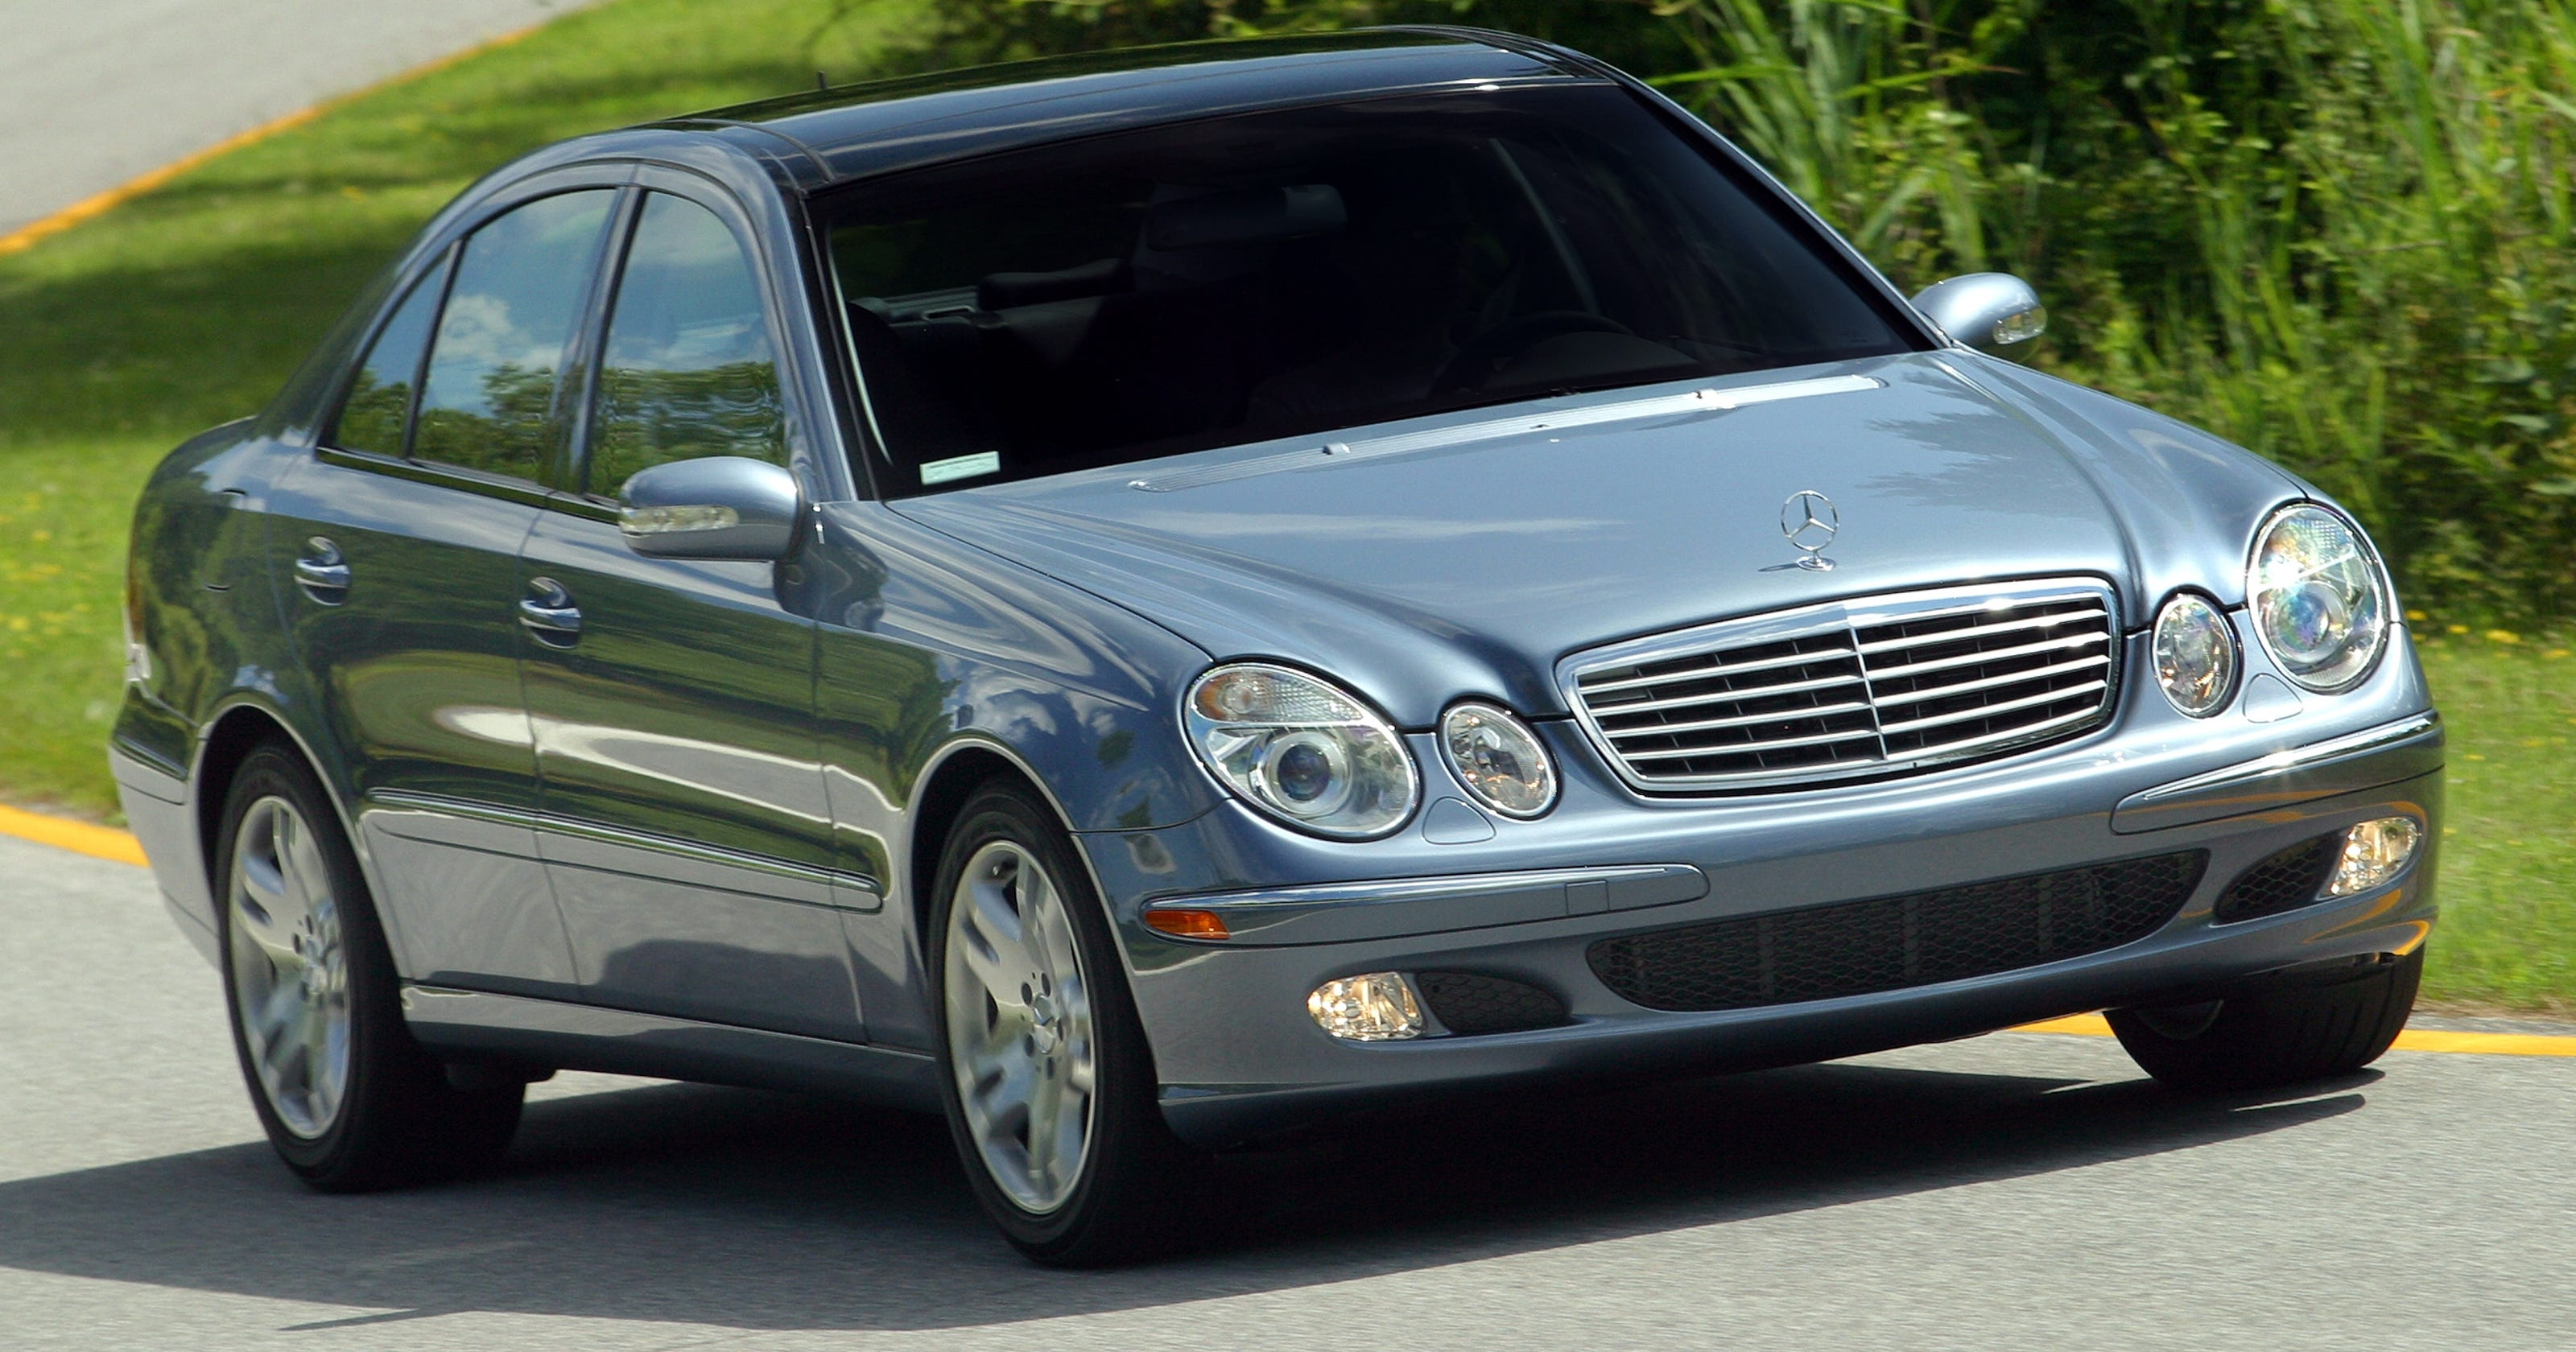 Feds investigate fuel smell in Mercedes-Benz E-Class